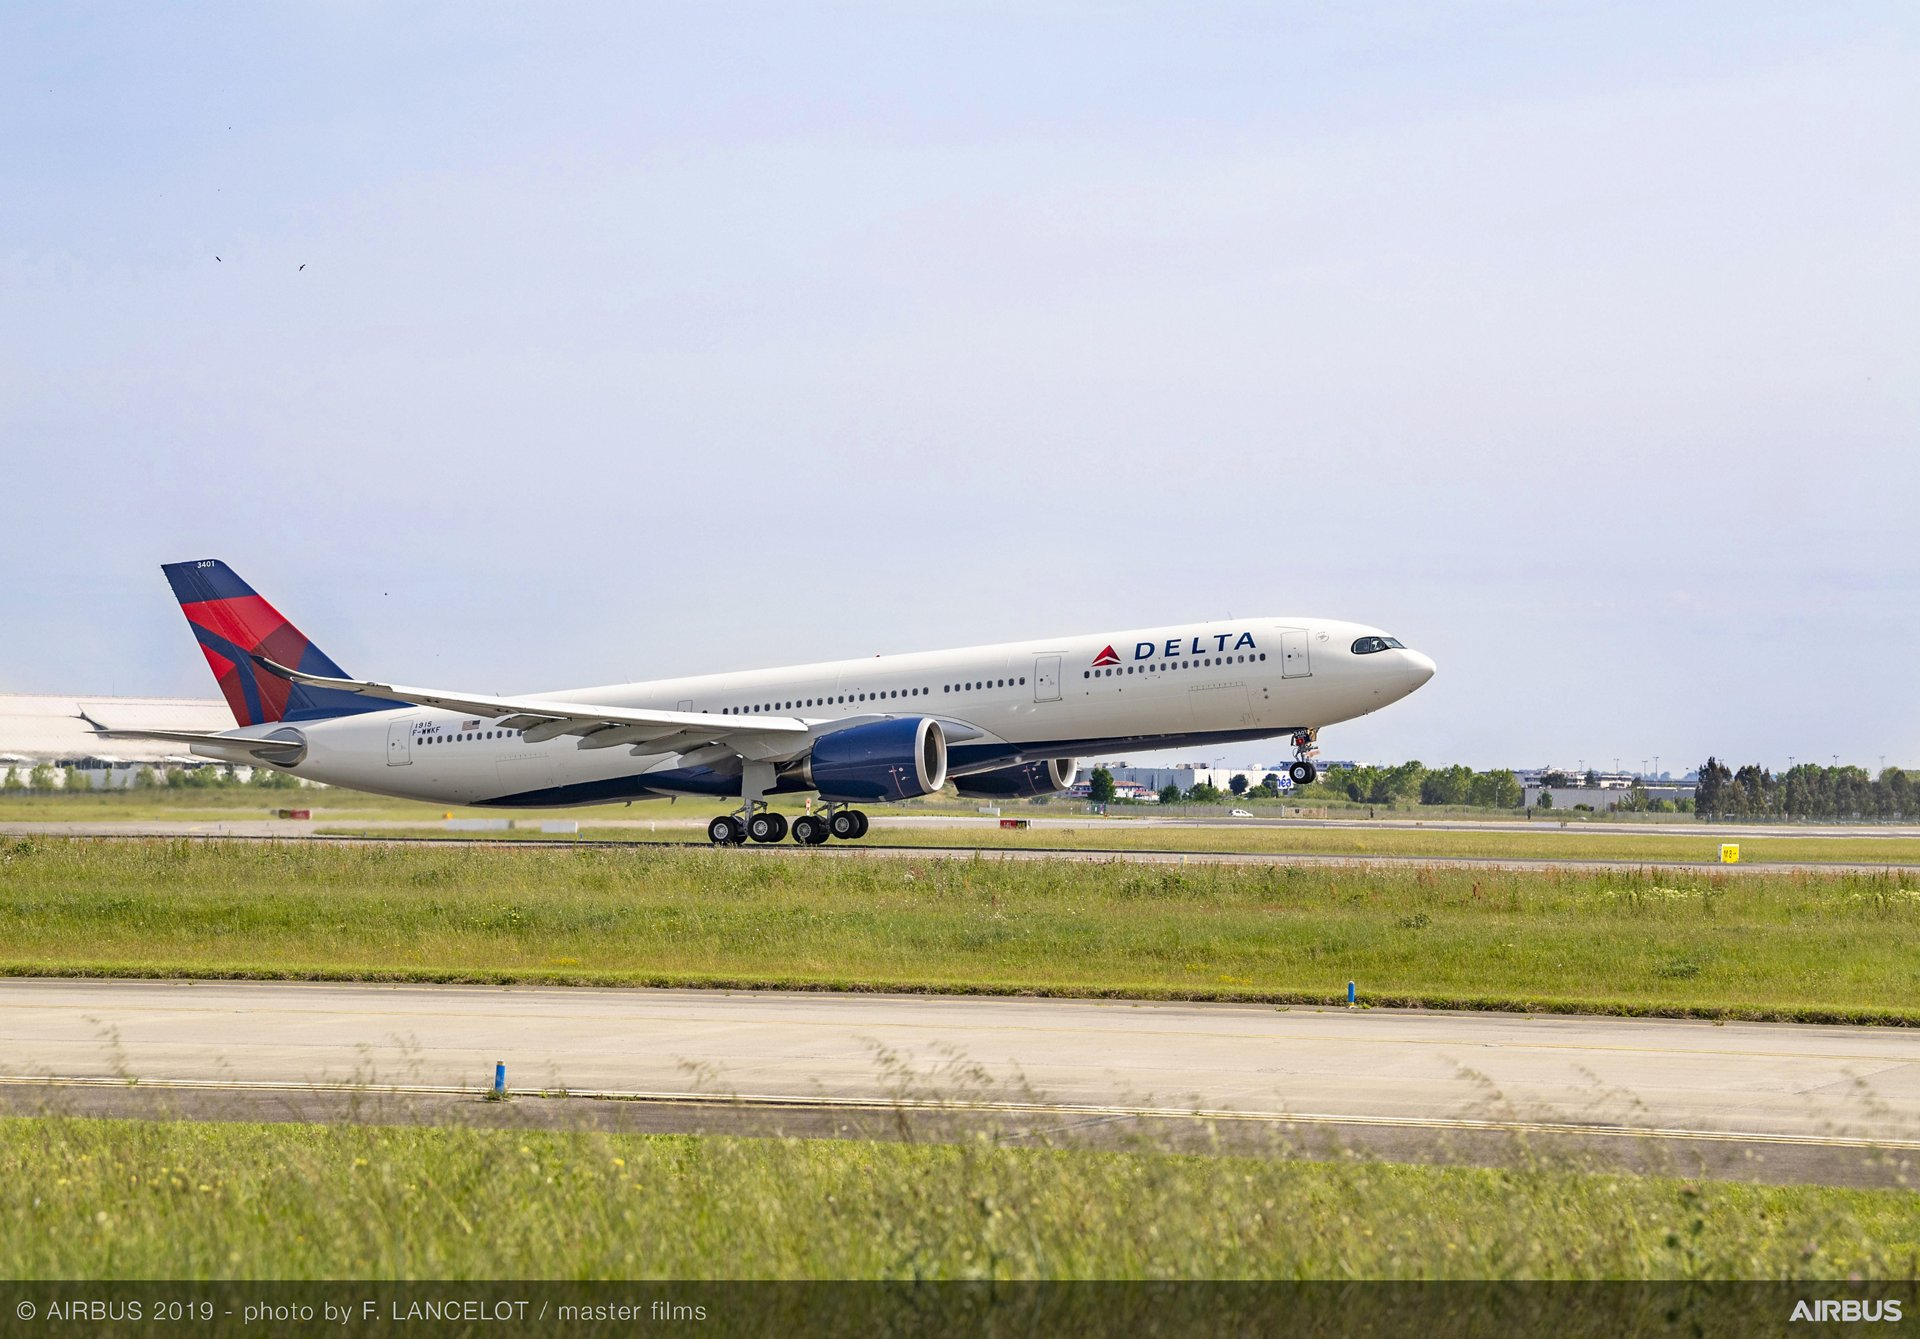 Delta Air Lines' A330-900 take-off